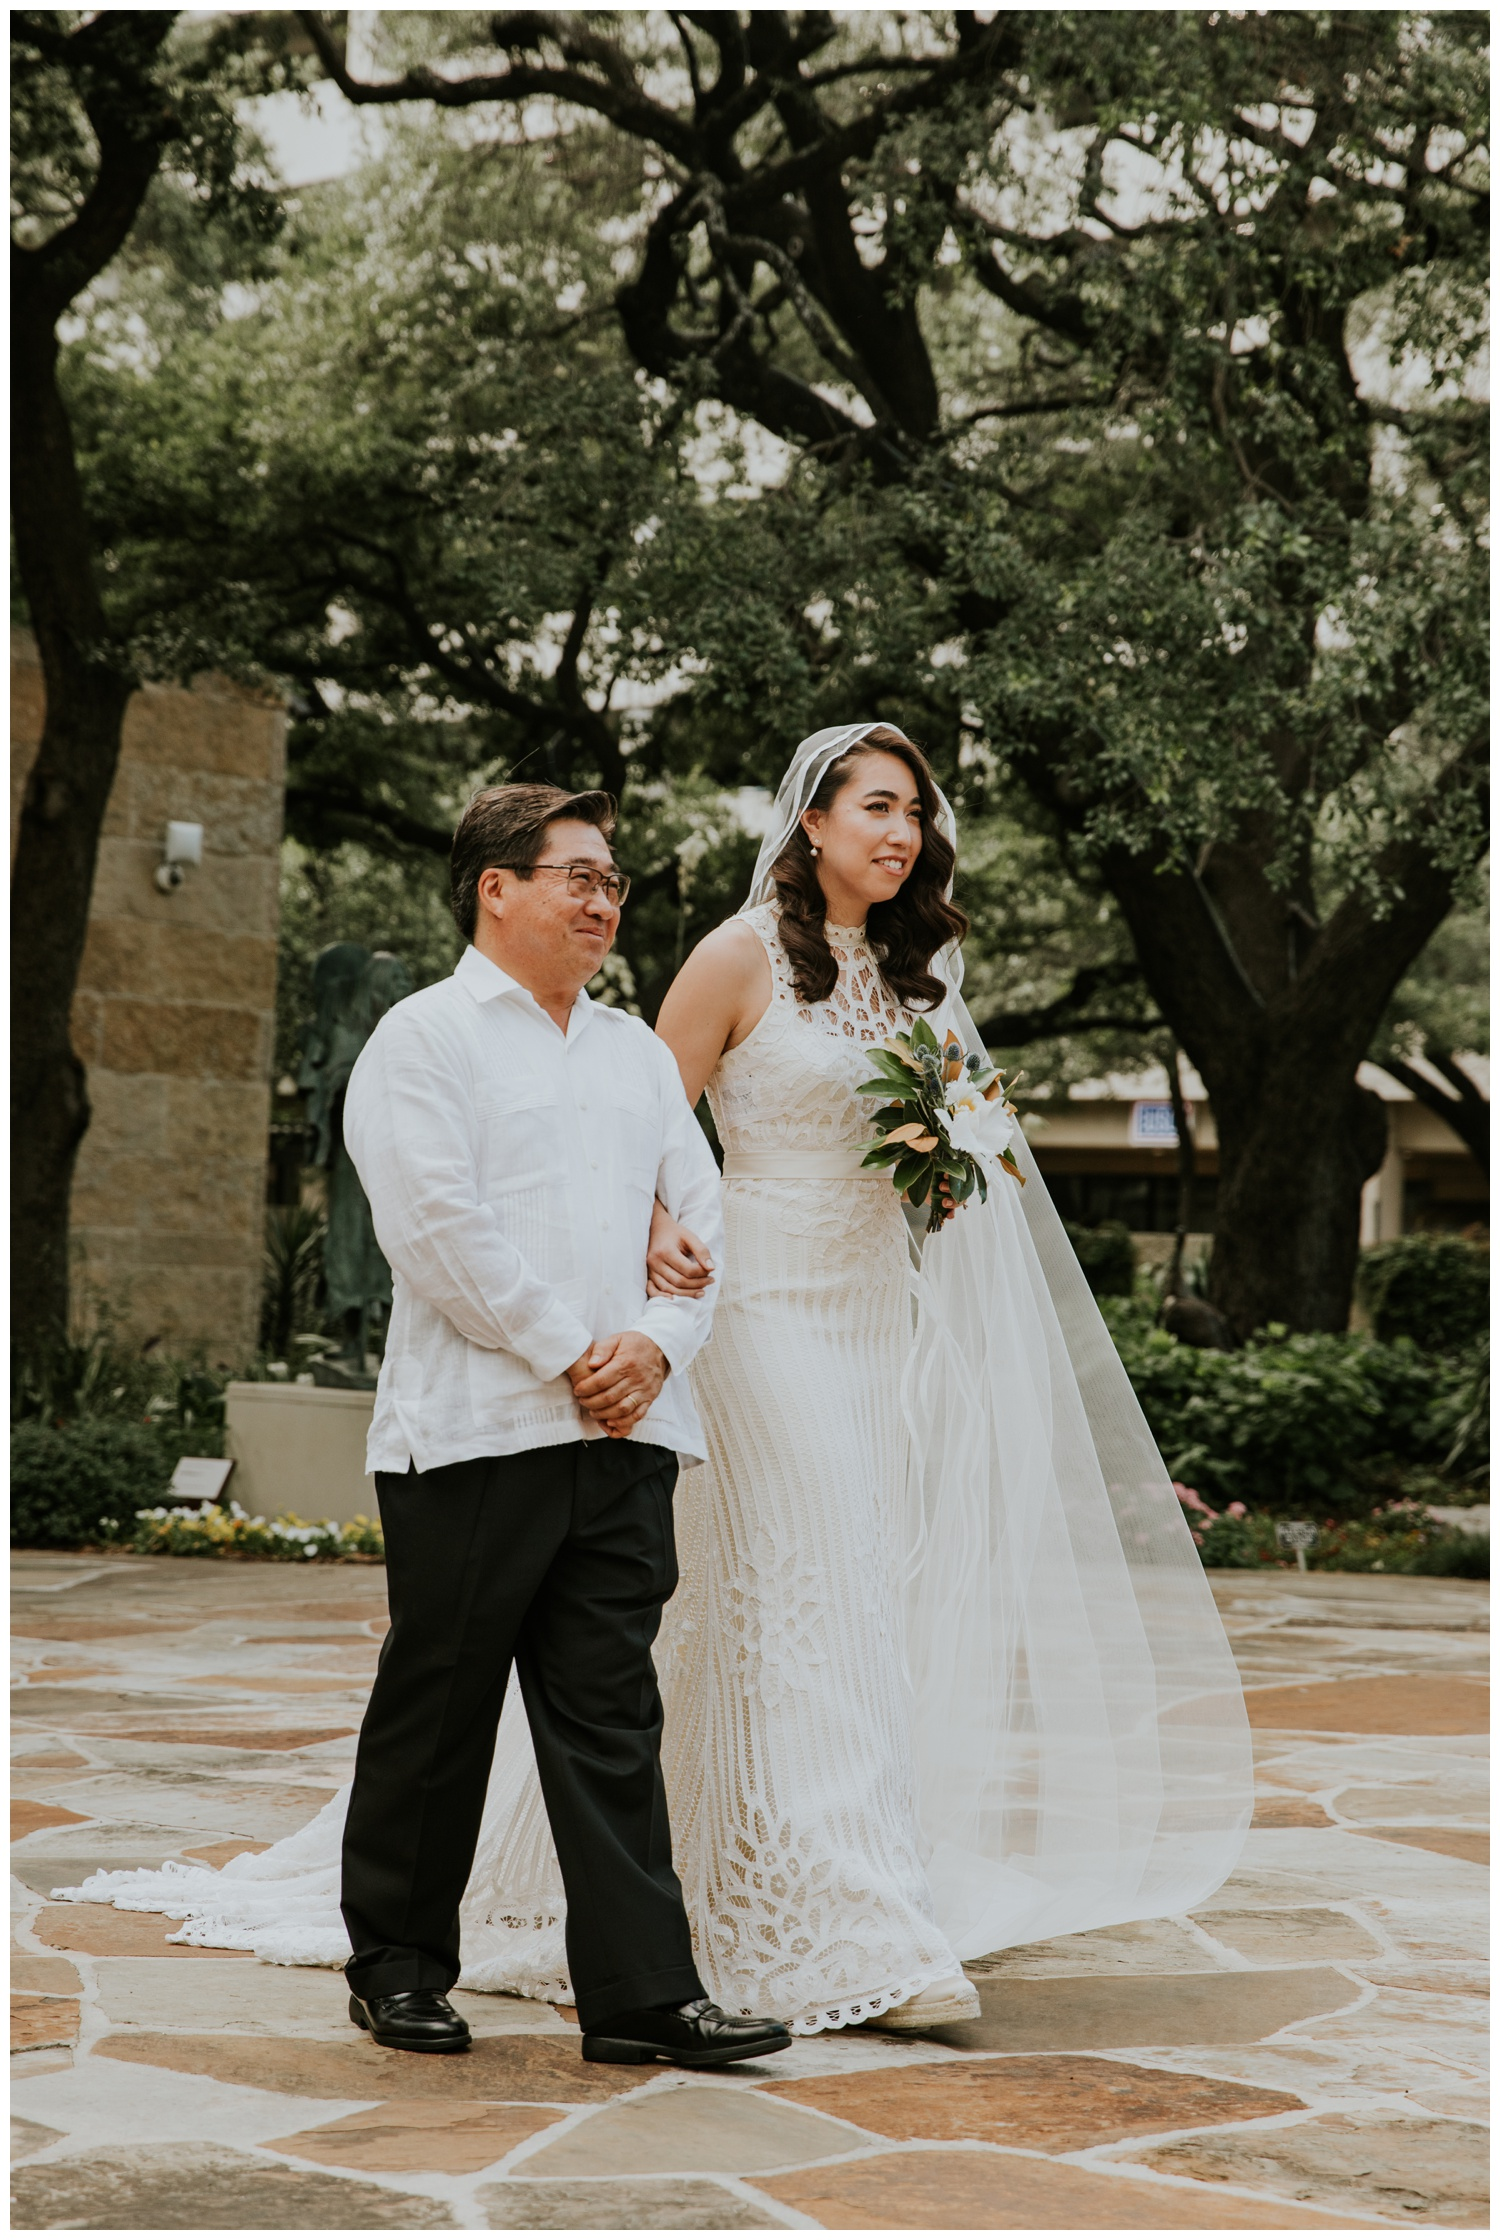 Ana + Sean || Jack Guenther Pavilion at the Briscoe Wedding San Antonio, Texas (Joshua and Parisa – Contista Productions)_0060.jpg